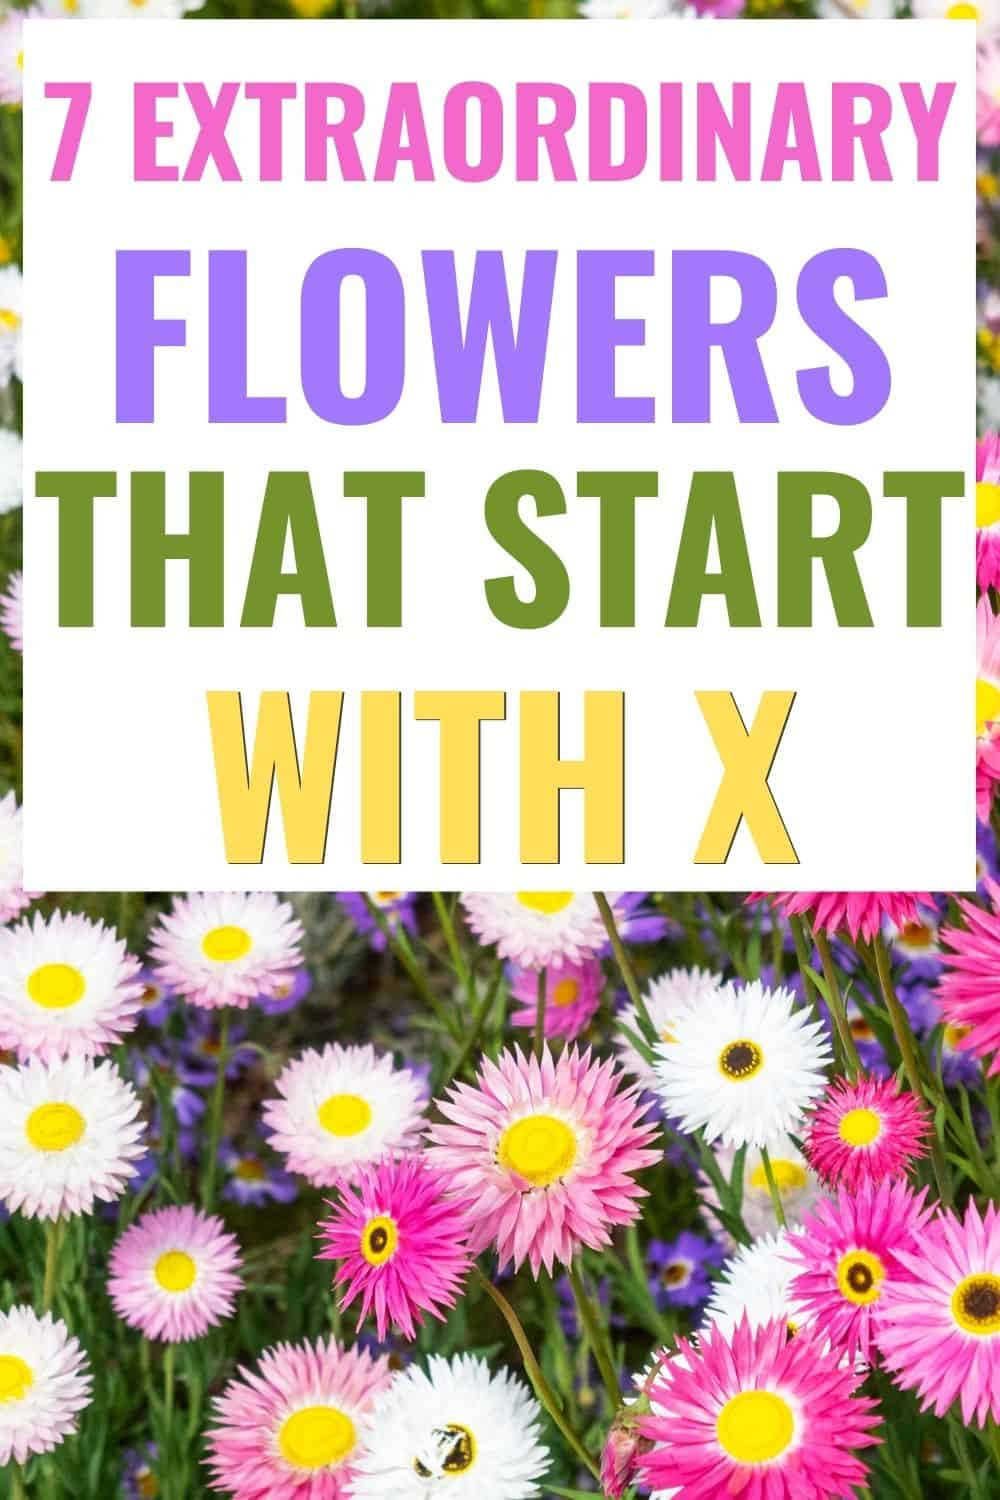 7 extraordinary flowers that start with x